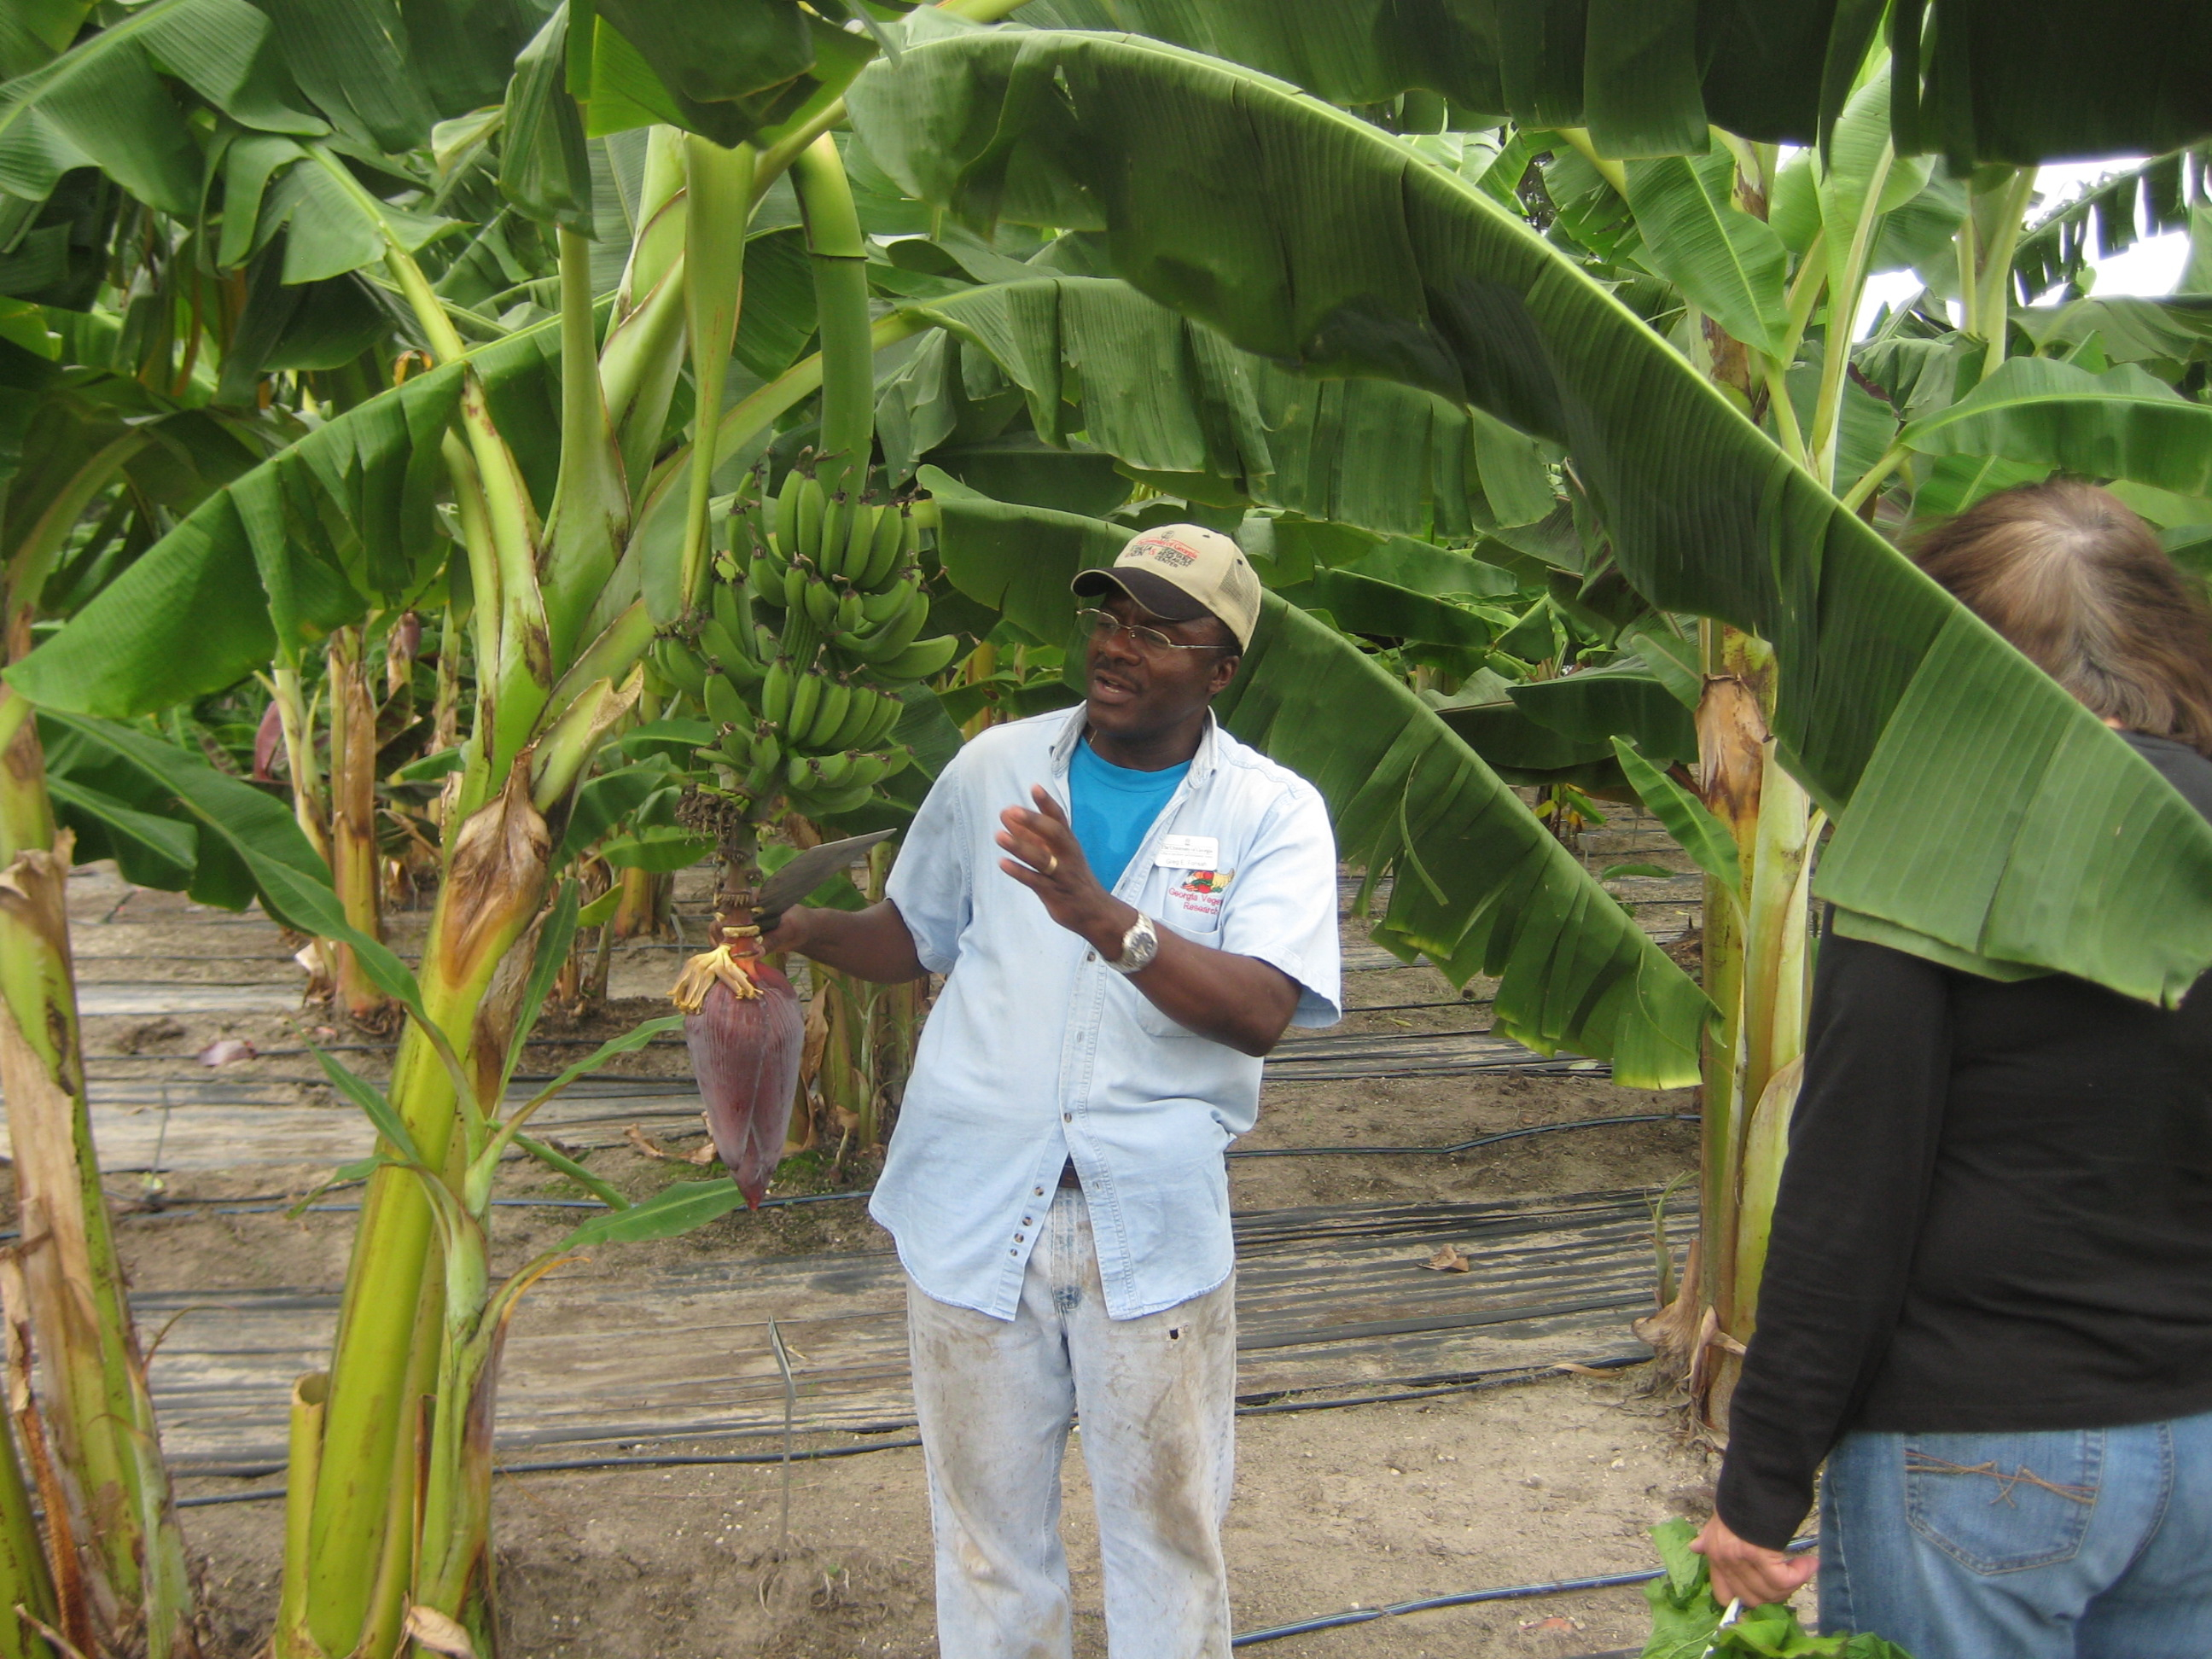 Greg Fonsah talks to guests viewing the banana trees on the UGA Tifton Campus.